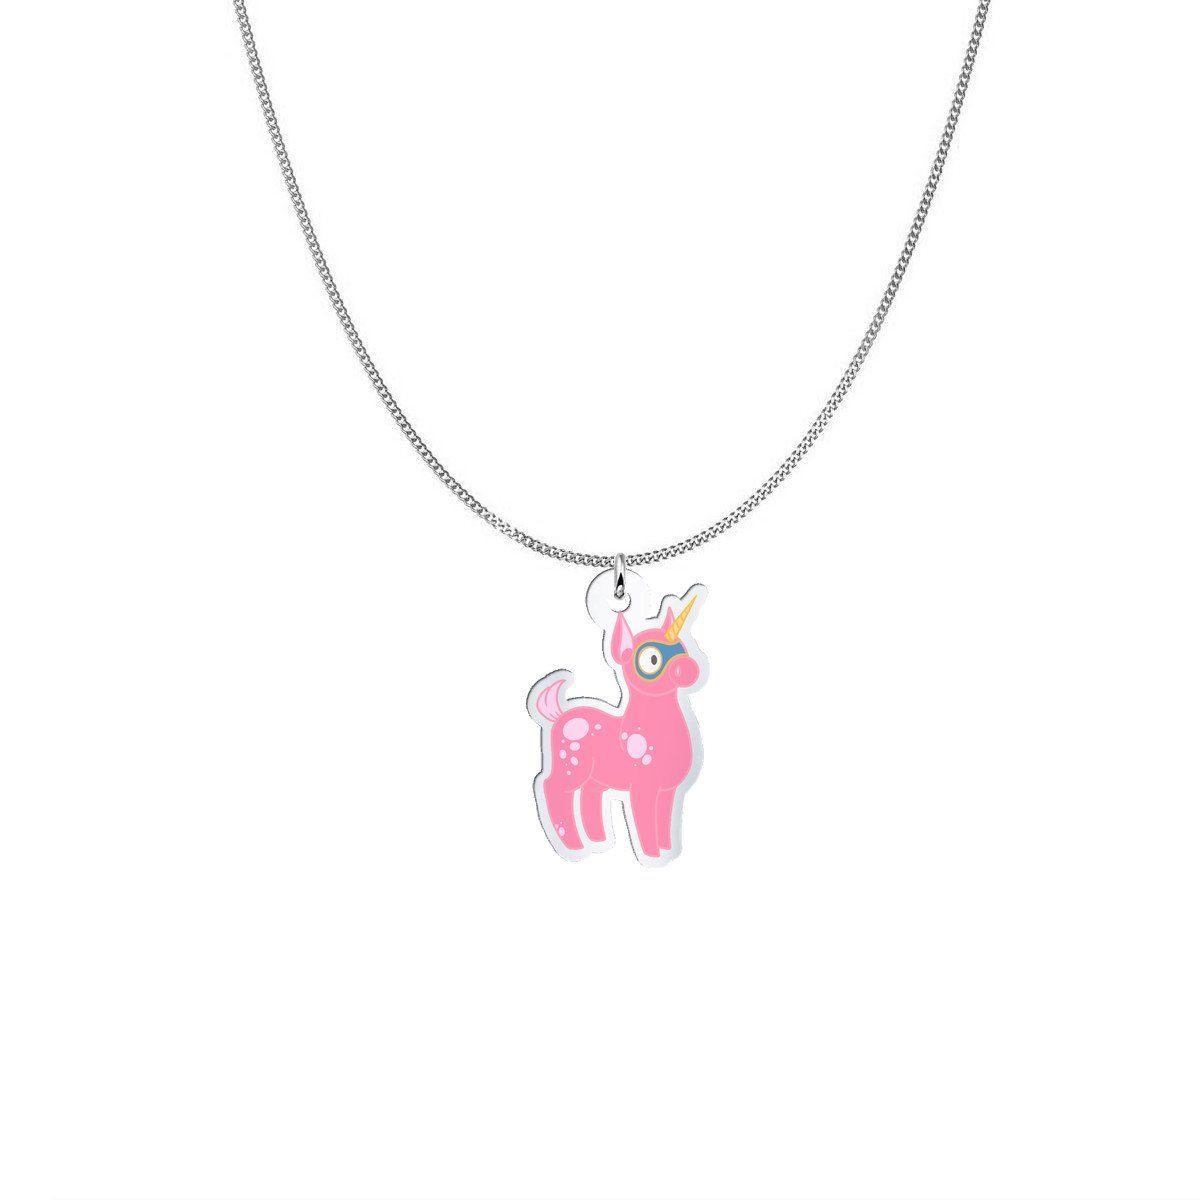 Pendant - Missy The Misdiagnosis Monster Silver Necklace